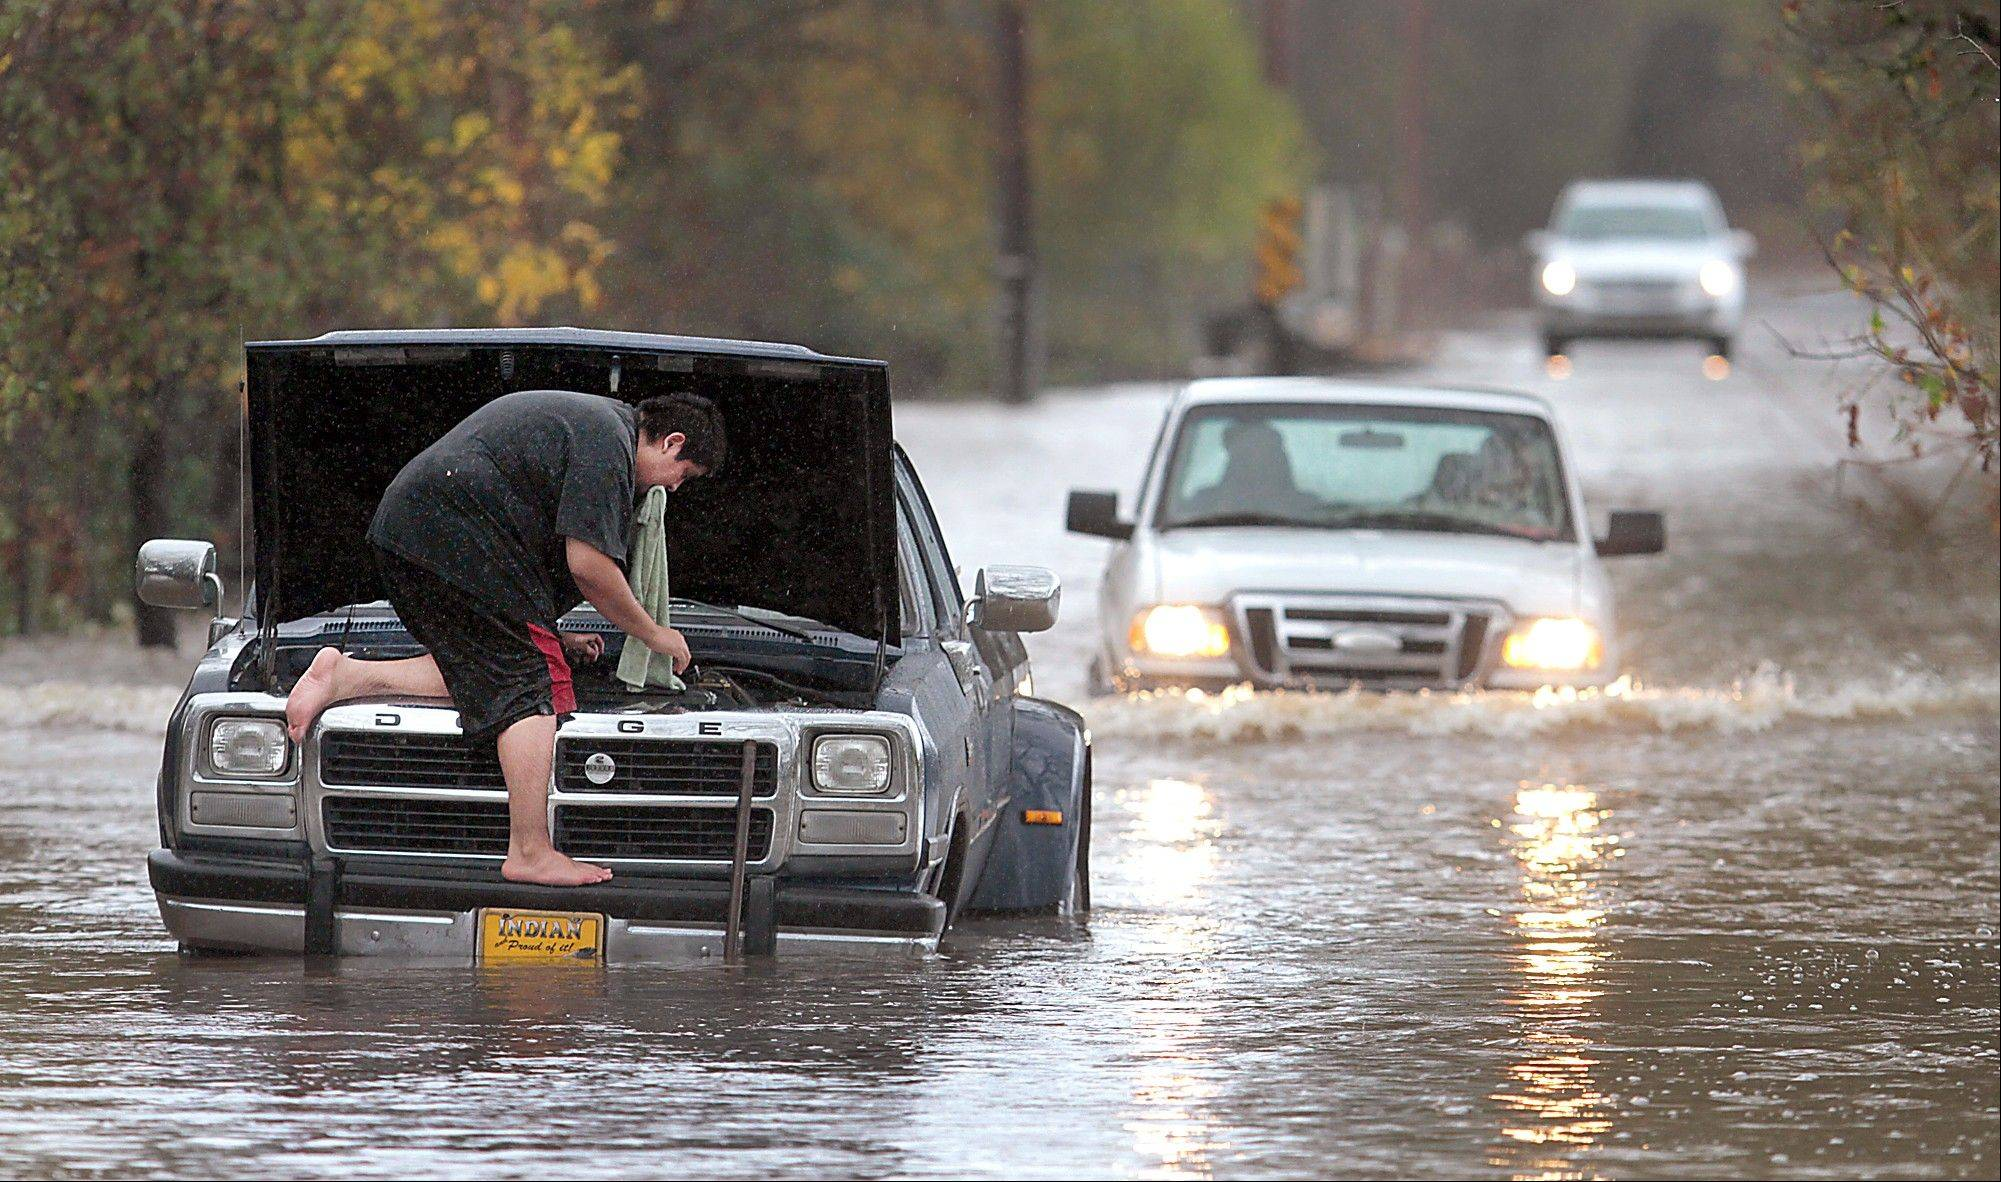 Milton Lopez of Windsor, Calif., attempted to drive through flood waters on Mark West Station Road Friday at Starr Road in Windsor, Calif.